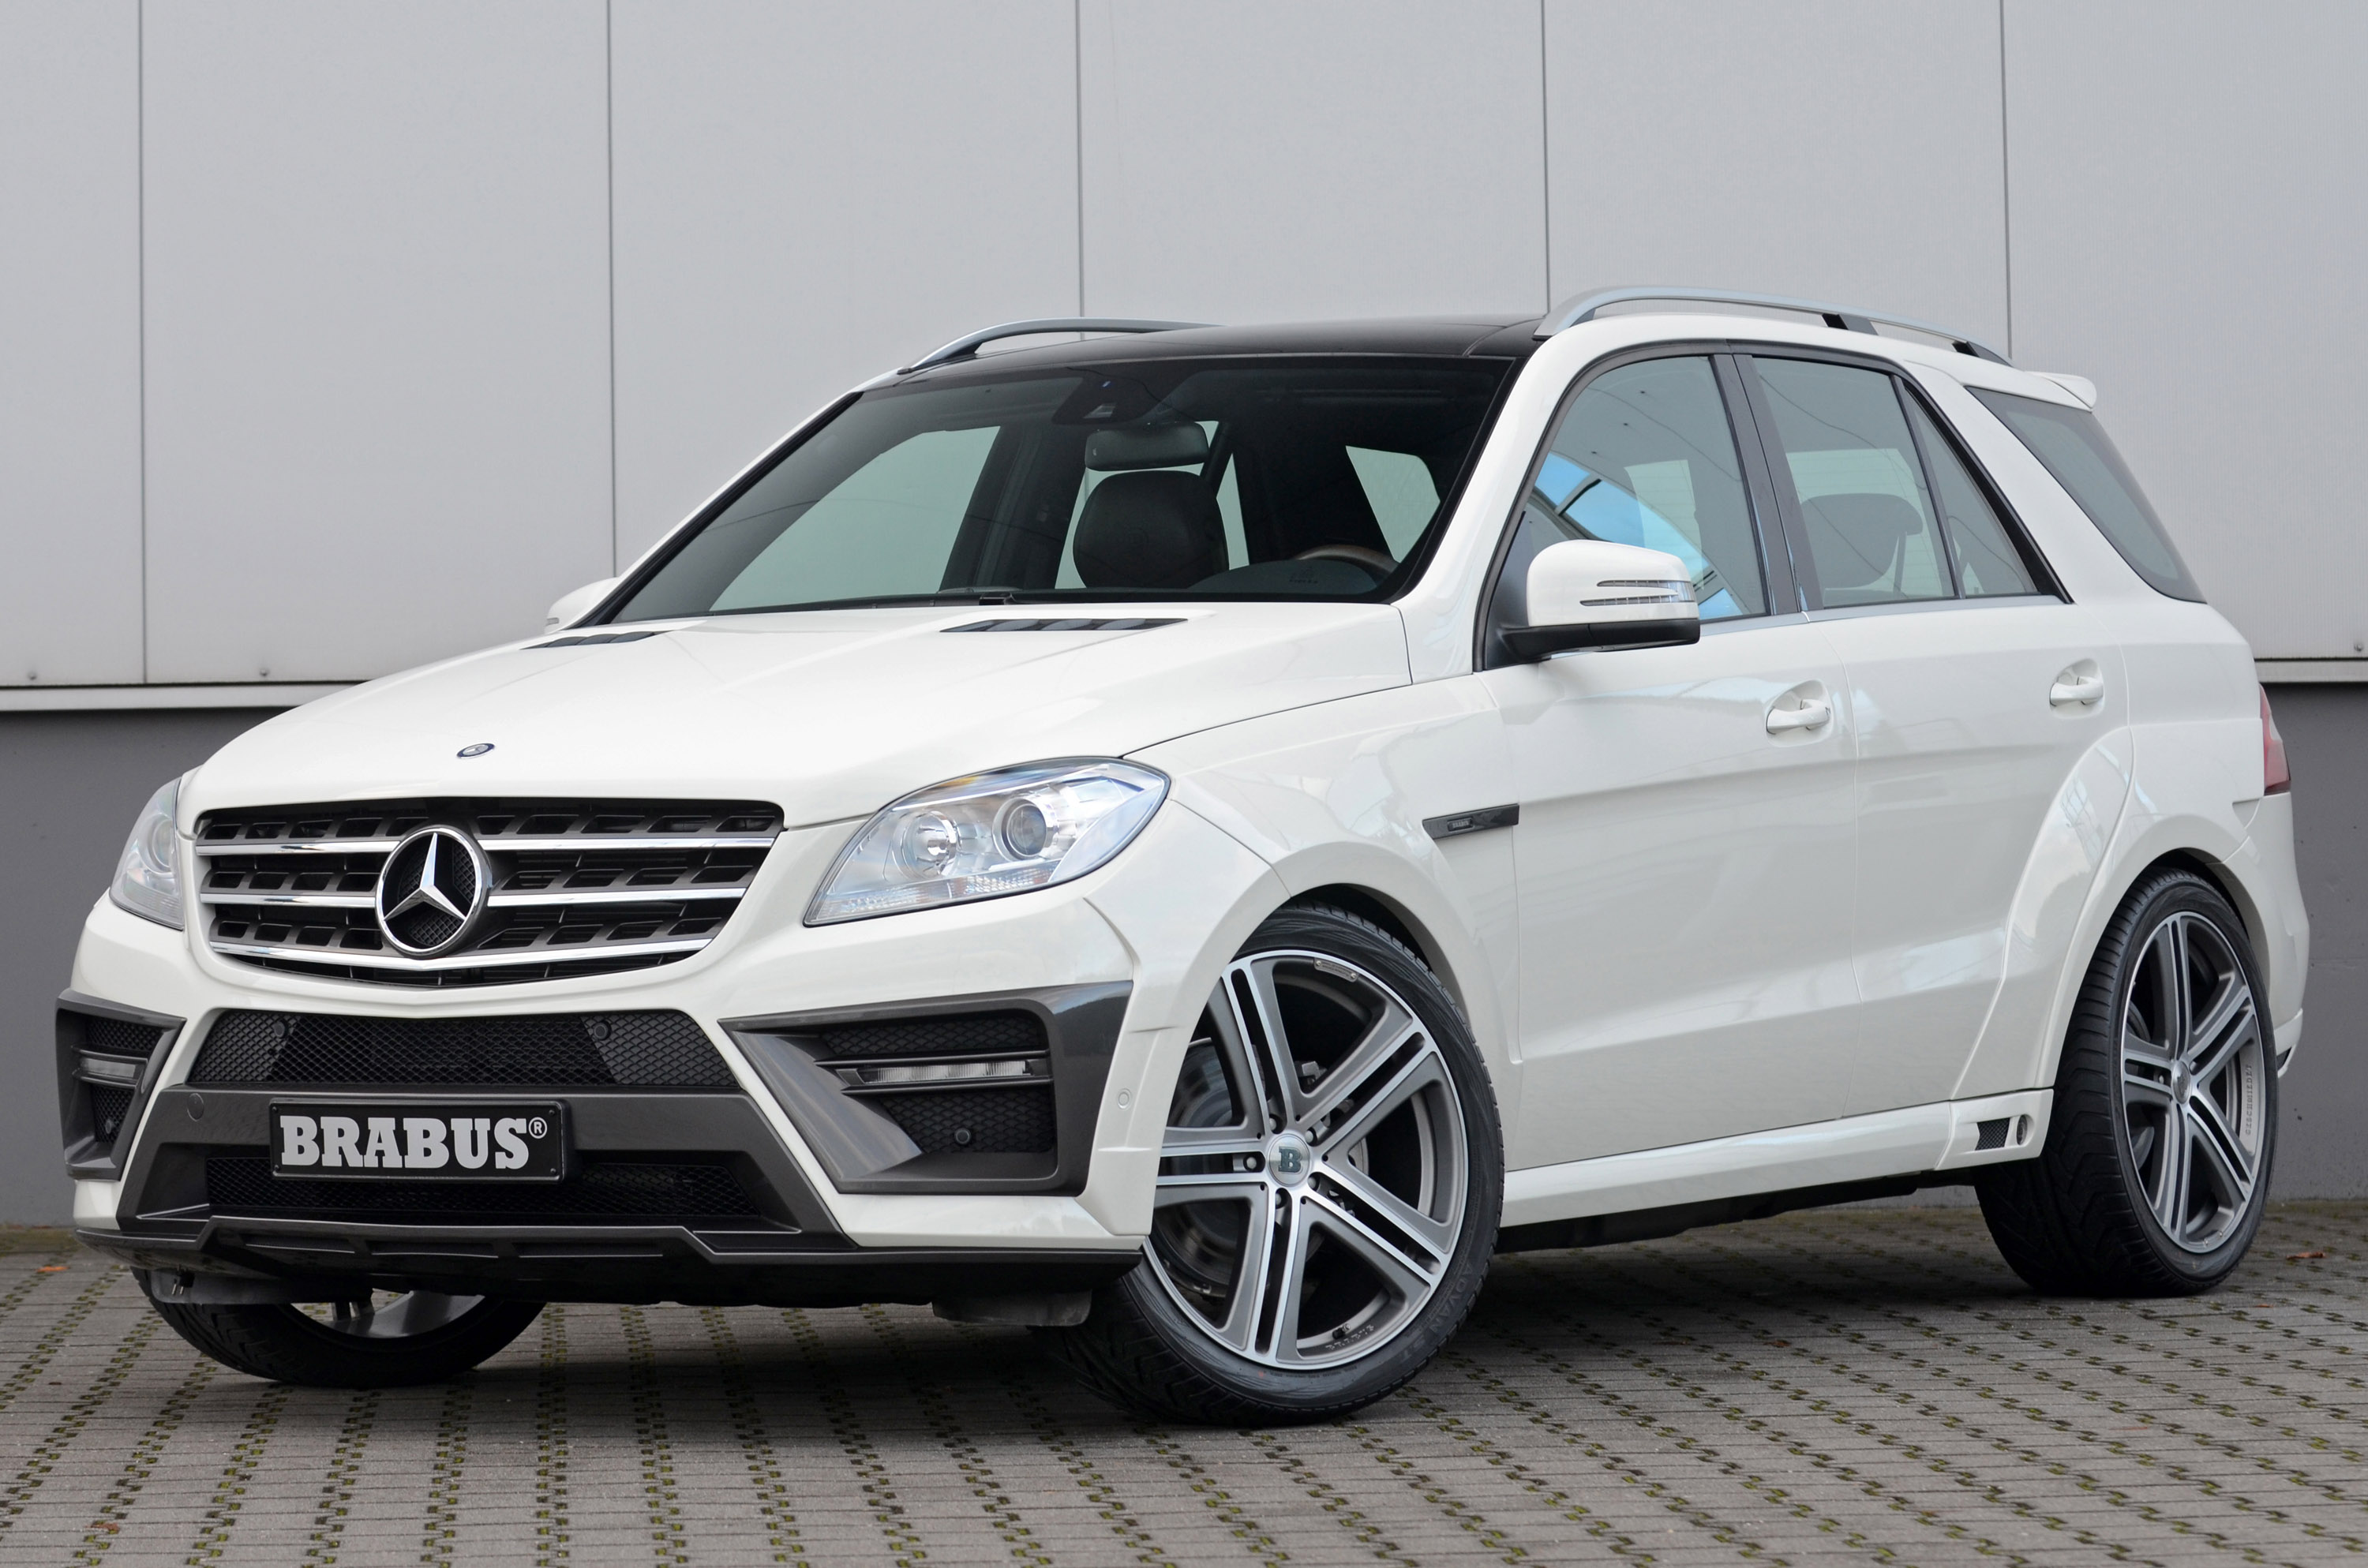 Image gallery mercedes benz ml for Mercedes benz ml price